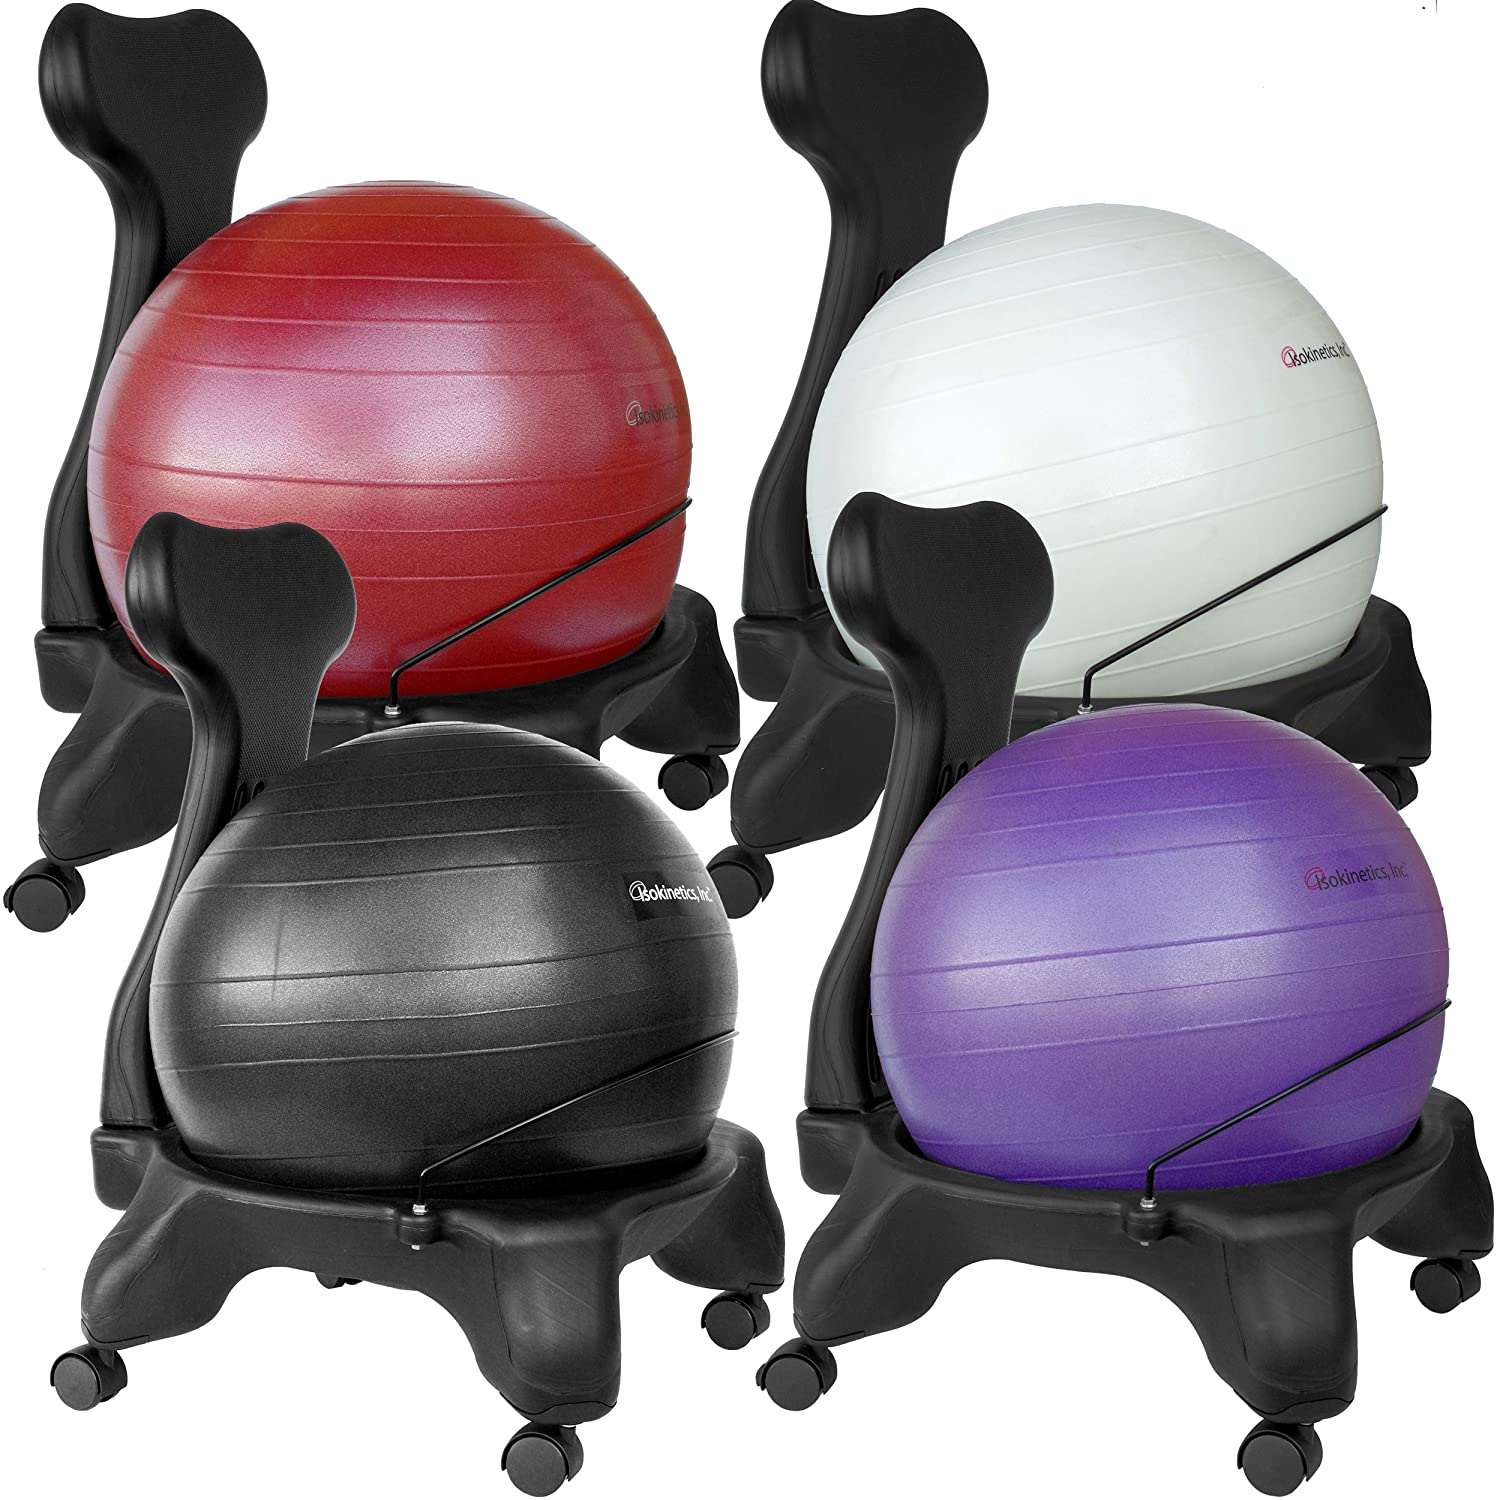 amazon gym ball chair bobs furniture recliner exercise office  fel7